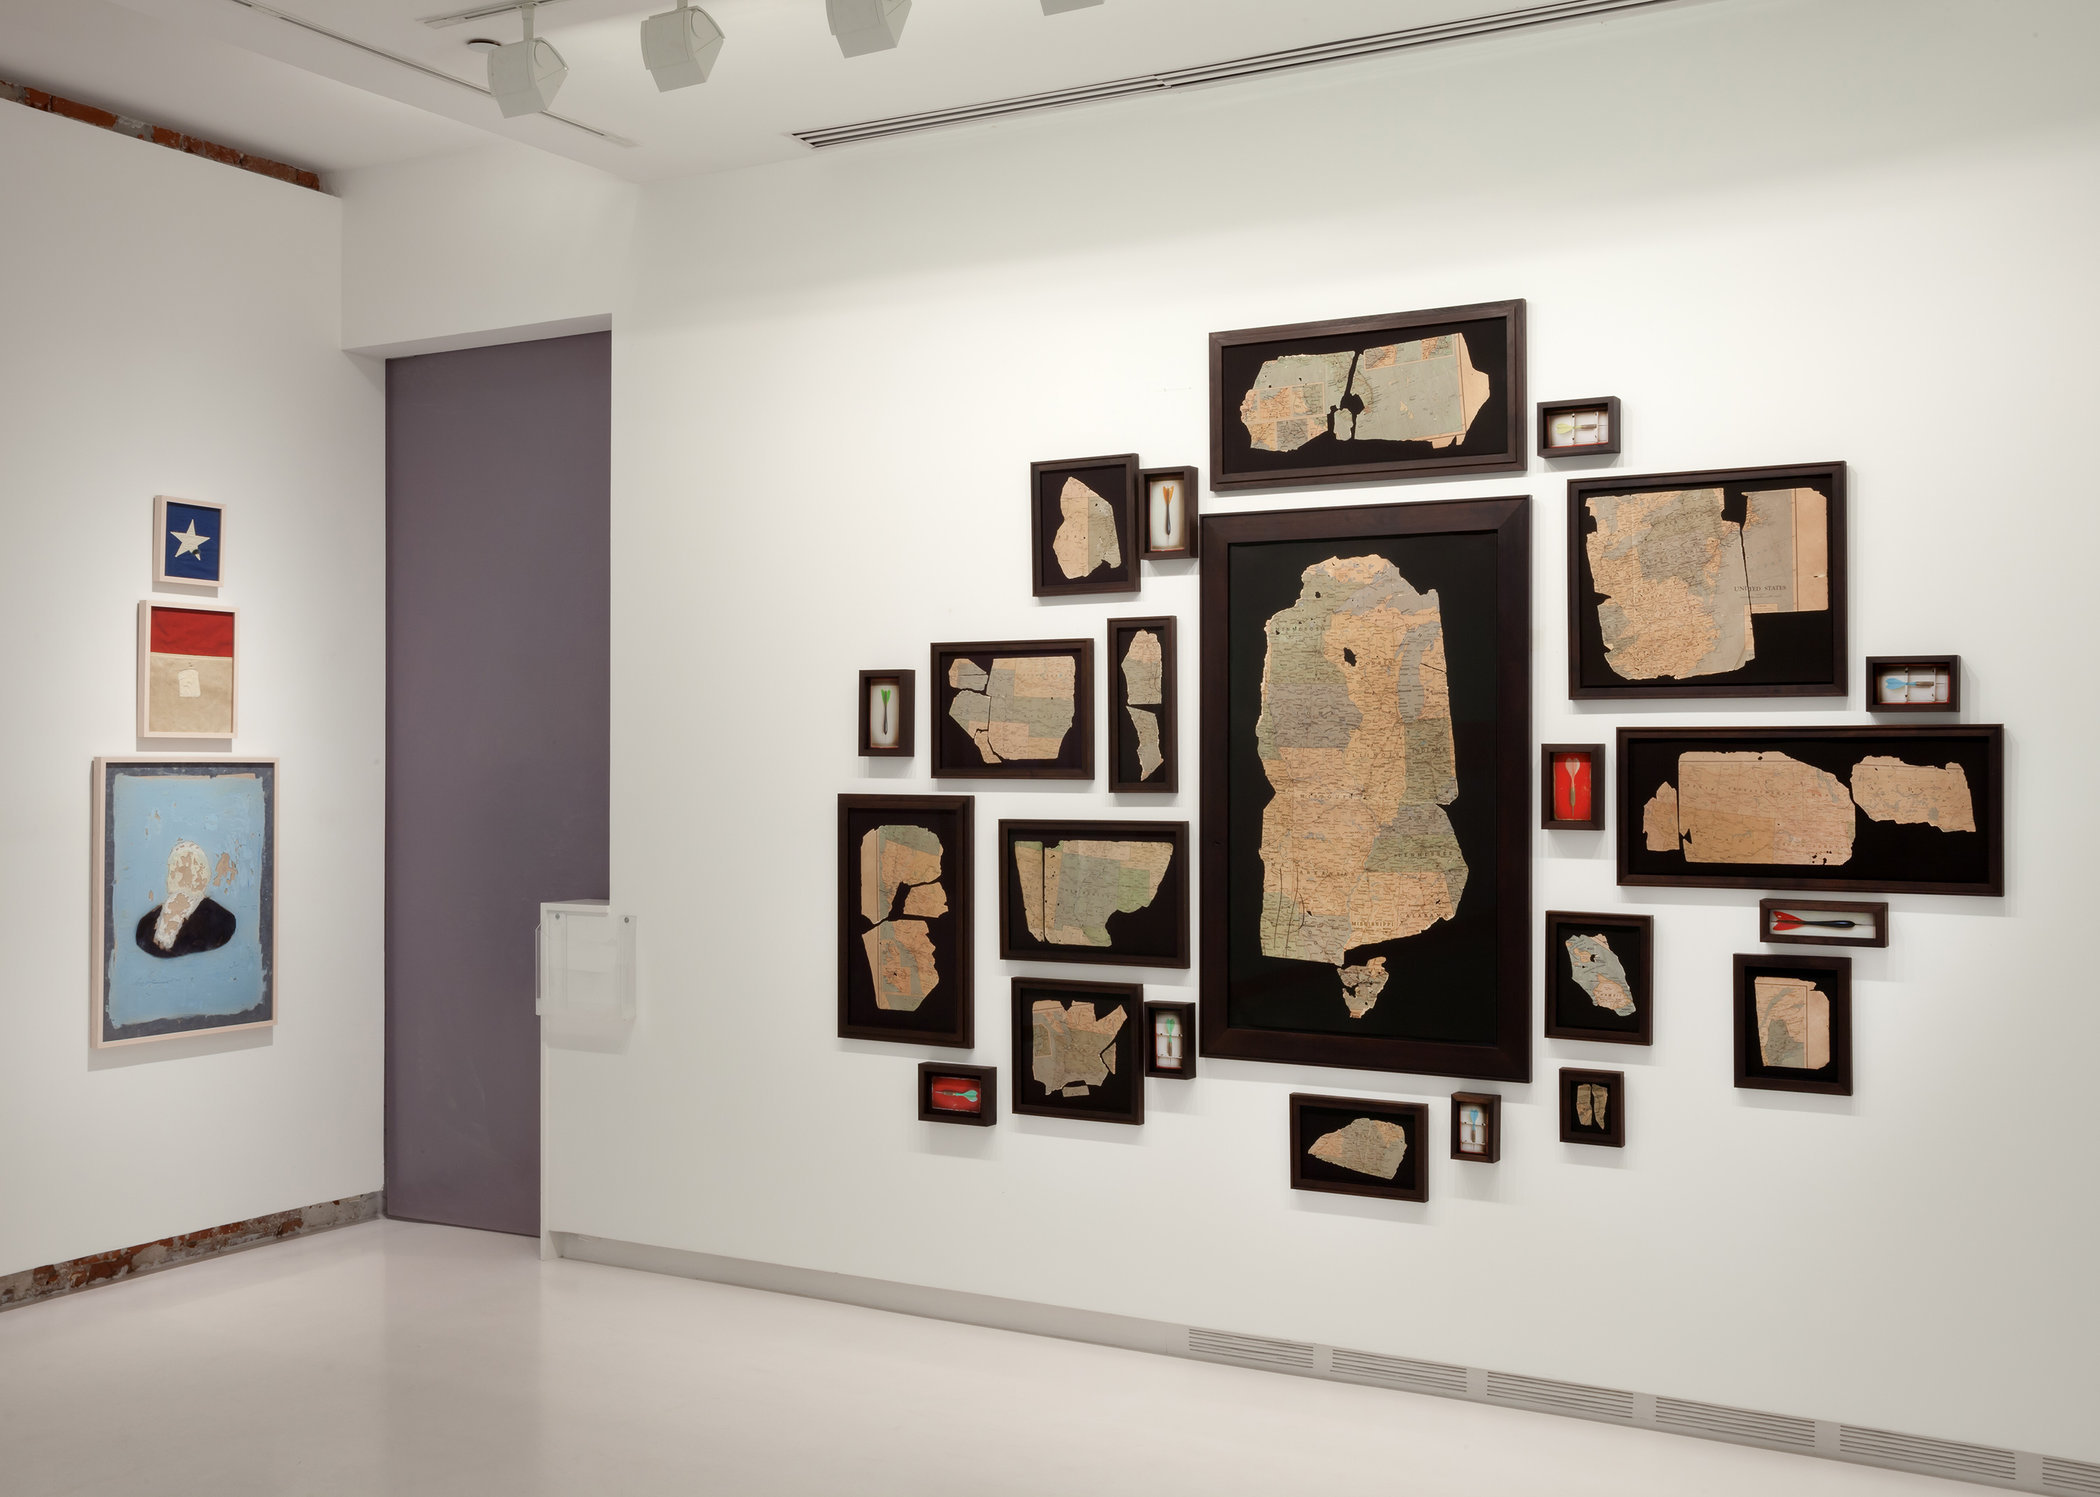 Installation View, Arthur Roger Gallery, 2013